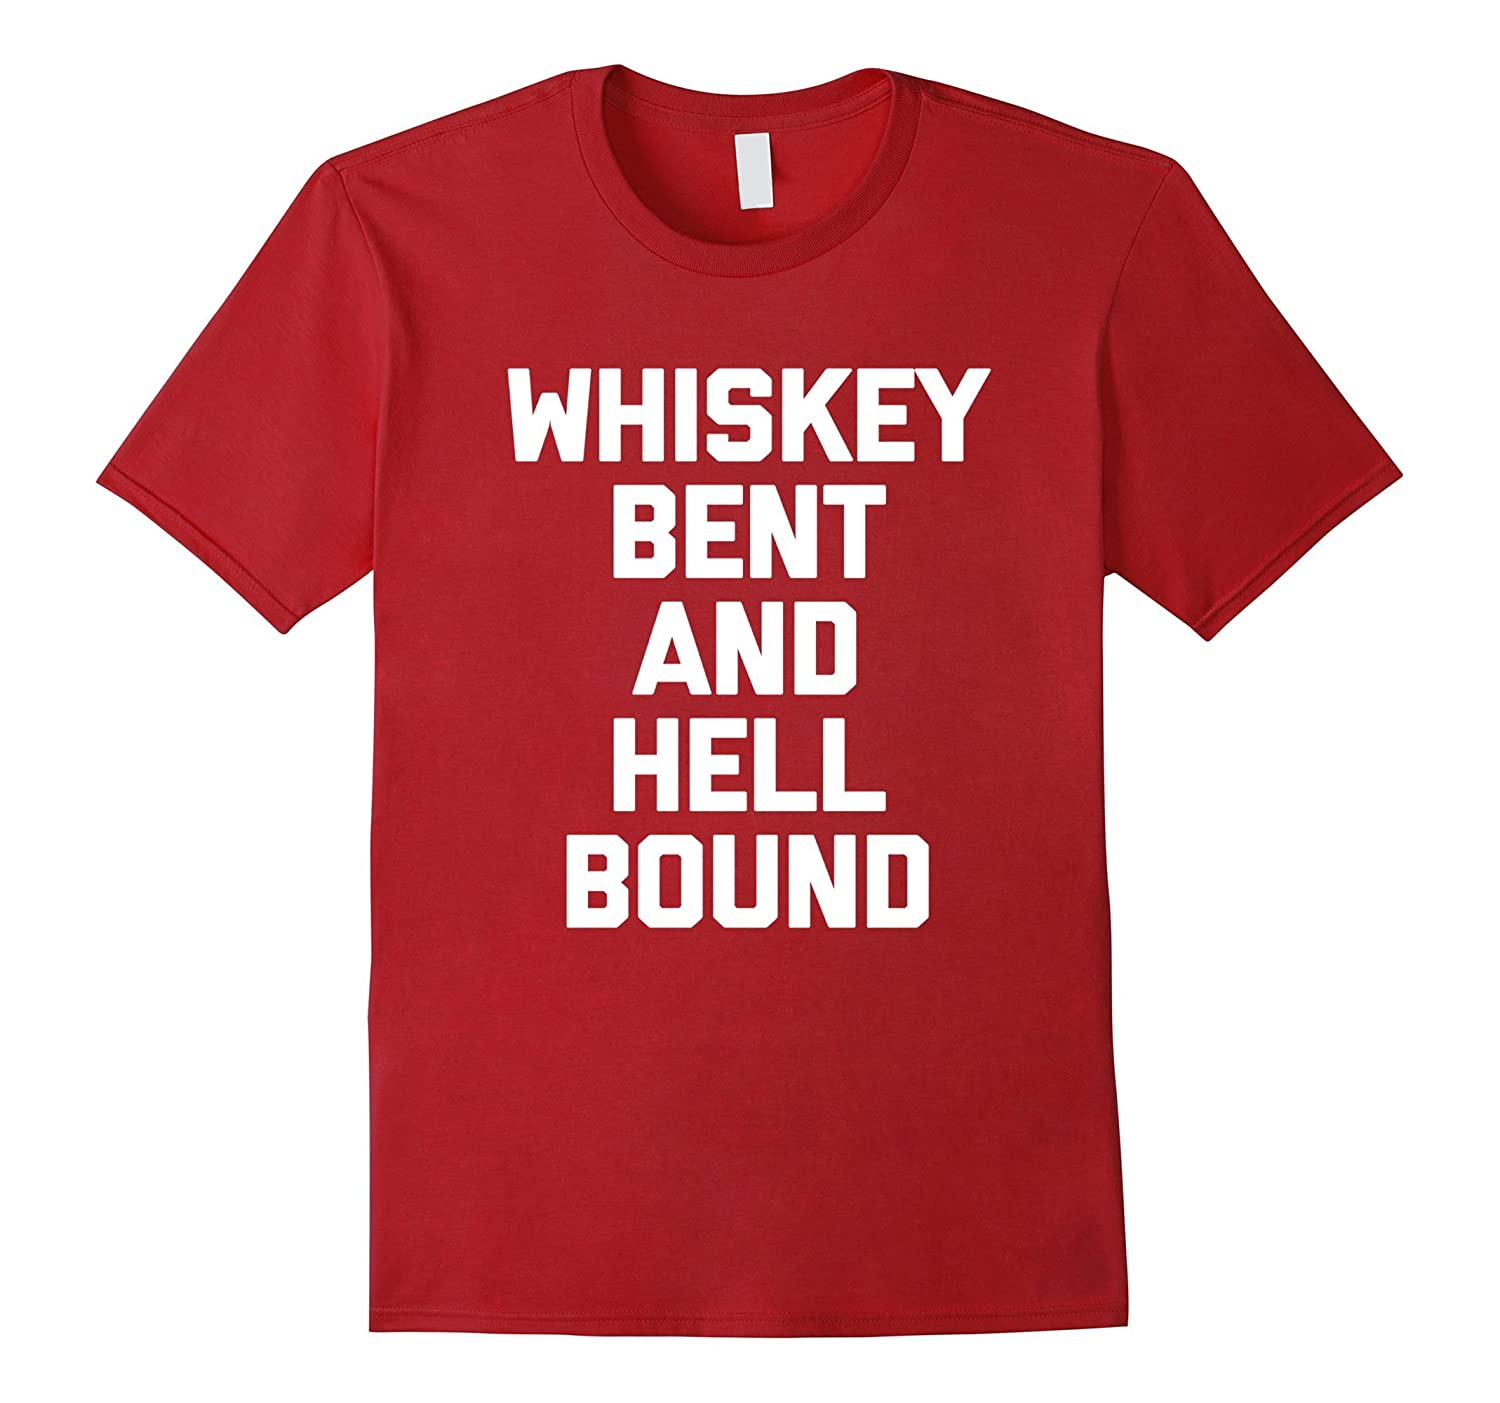 Whiskey Bent & Hell Bound T-Shirt funny saying sarcastic tee